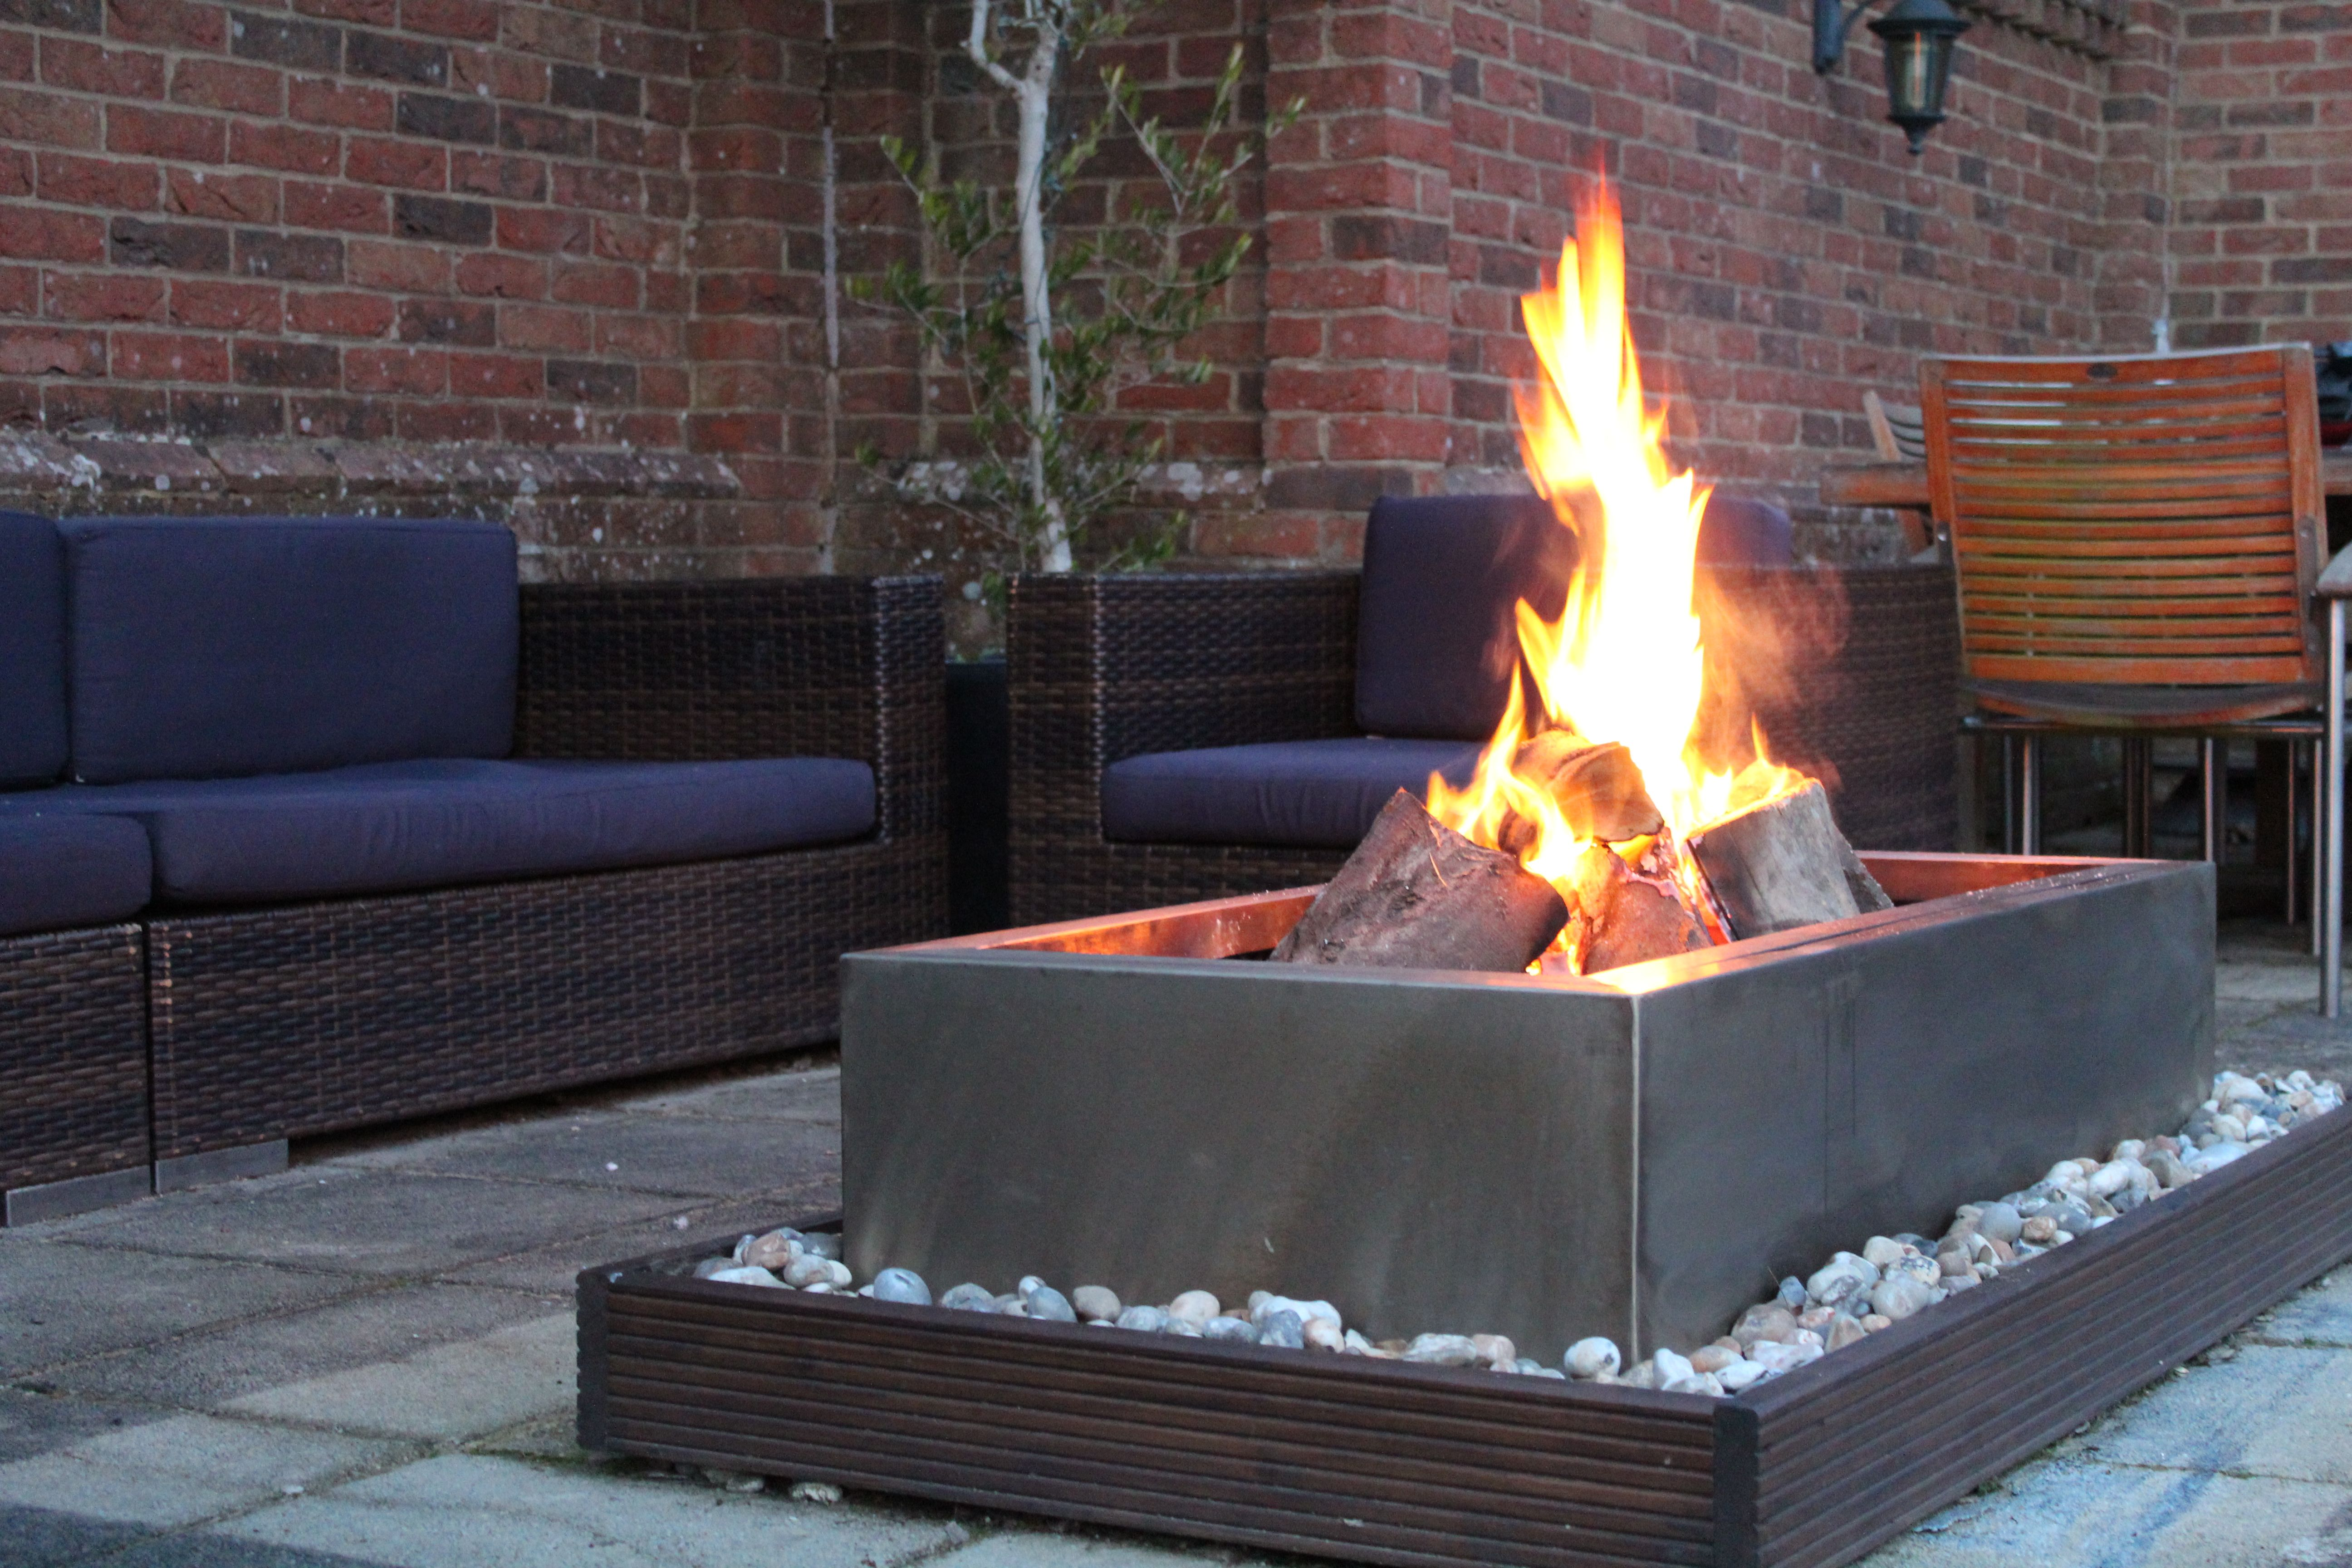 Lux modern stainless steel fire pit available at our etsy shop